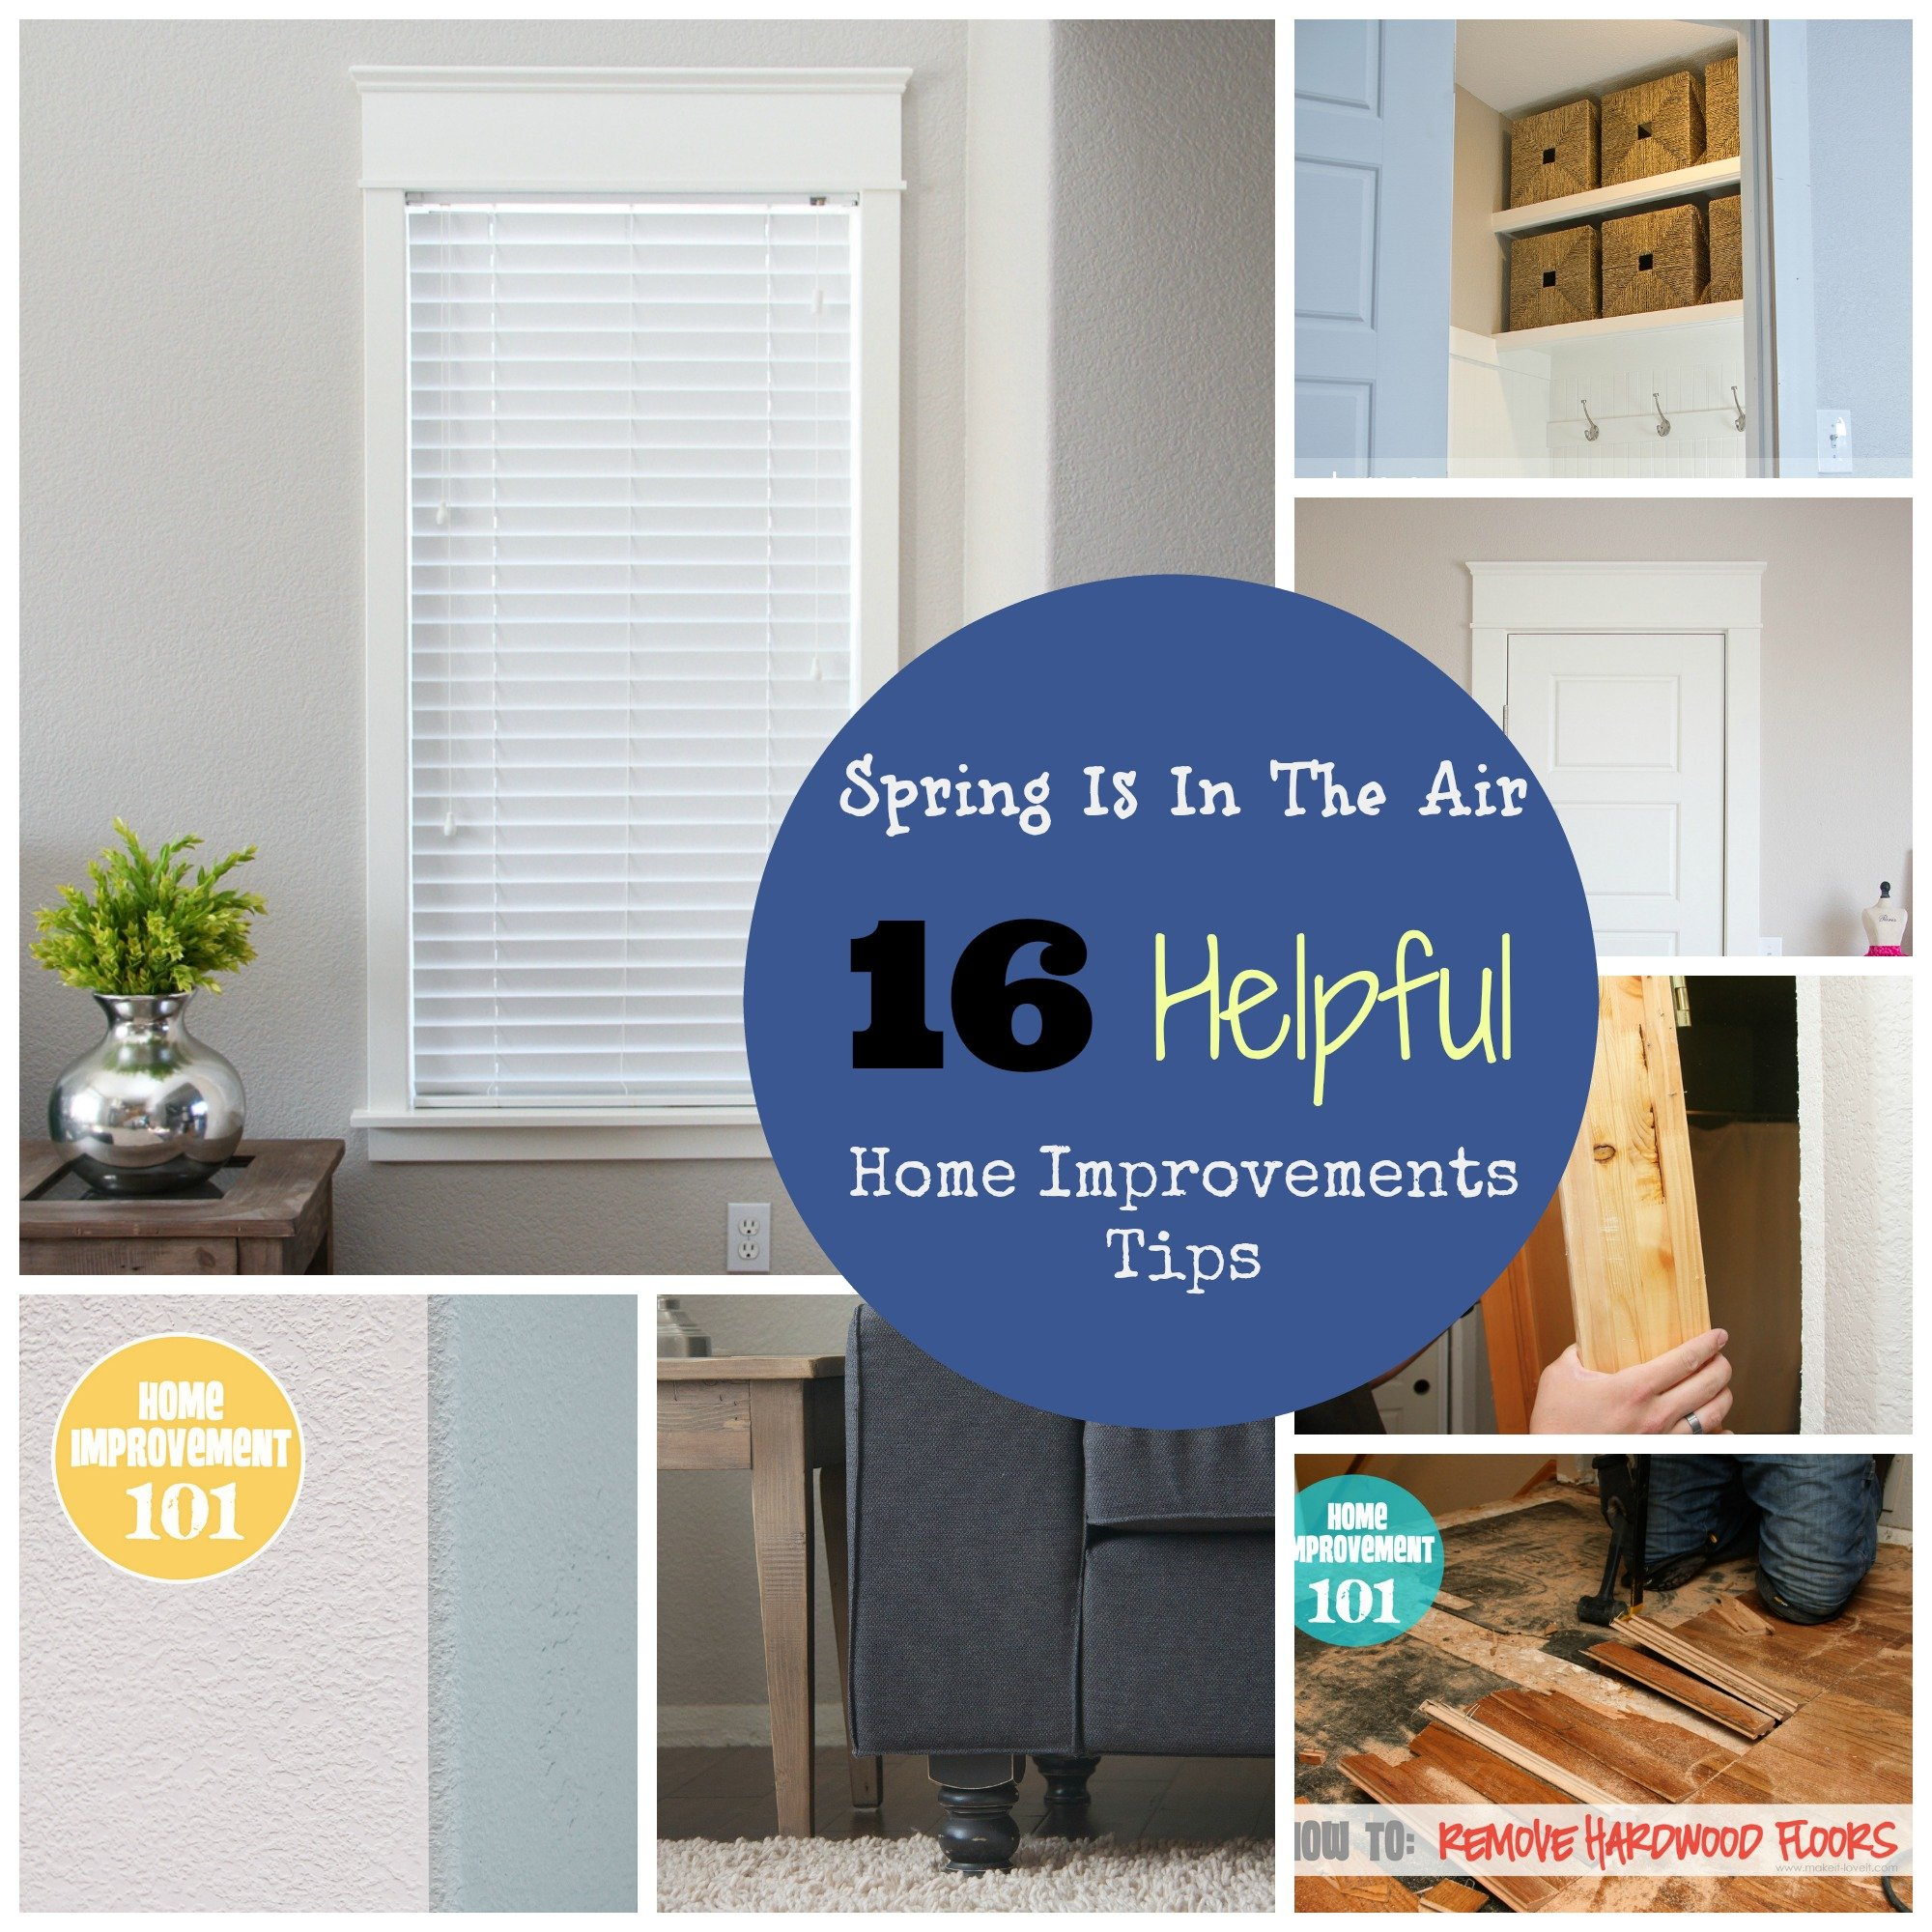 Spring is in the air    10 helpful home improvement tips